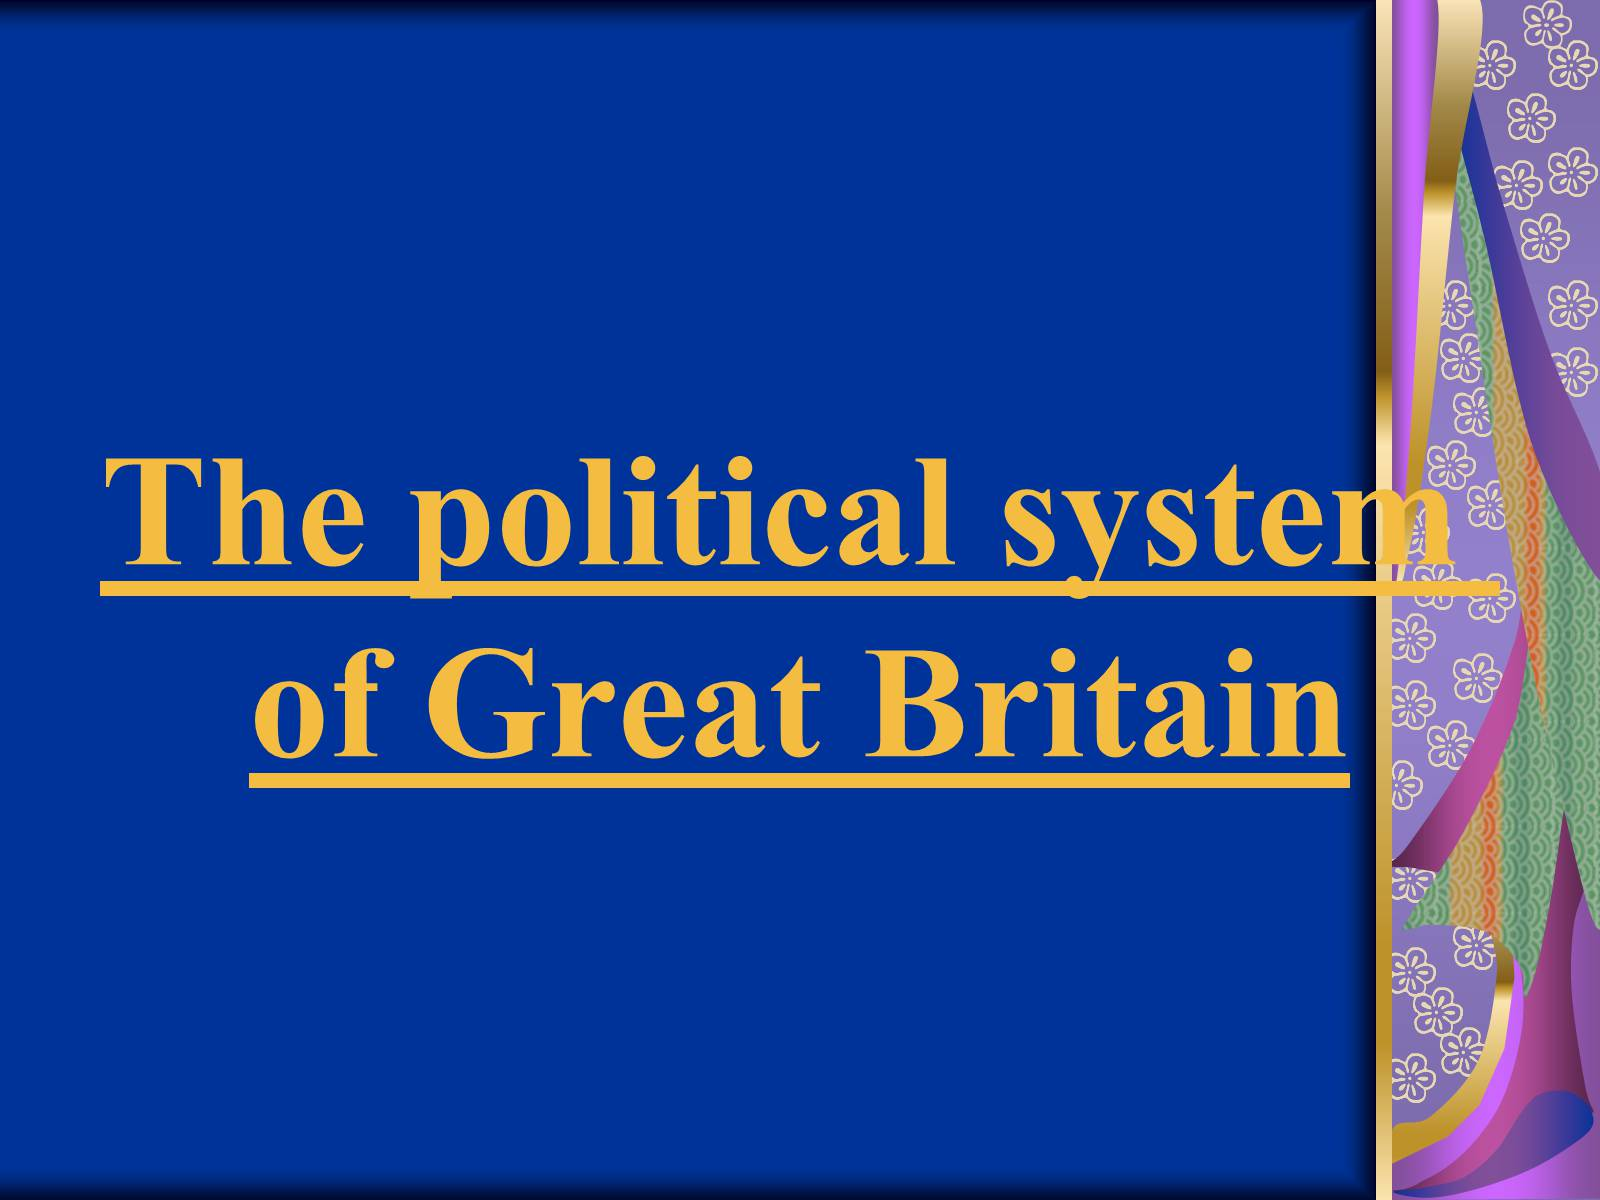 Презентація на тему «The political system of Great Britain»